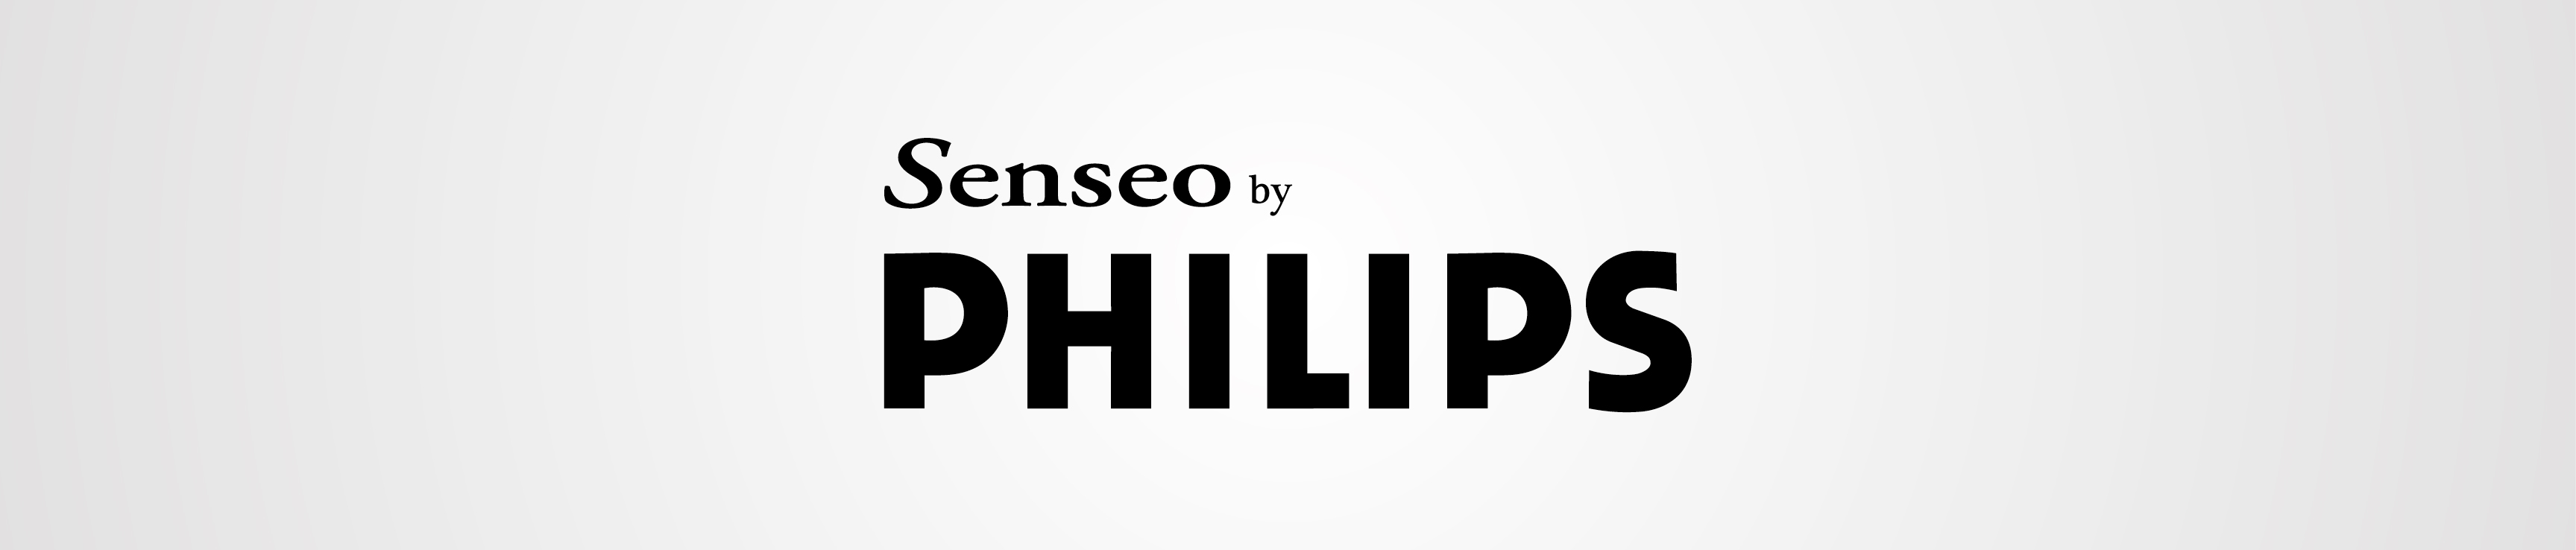 Archicercle - baner senseo by philips